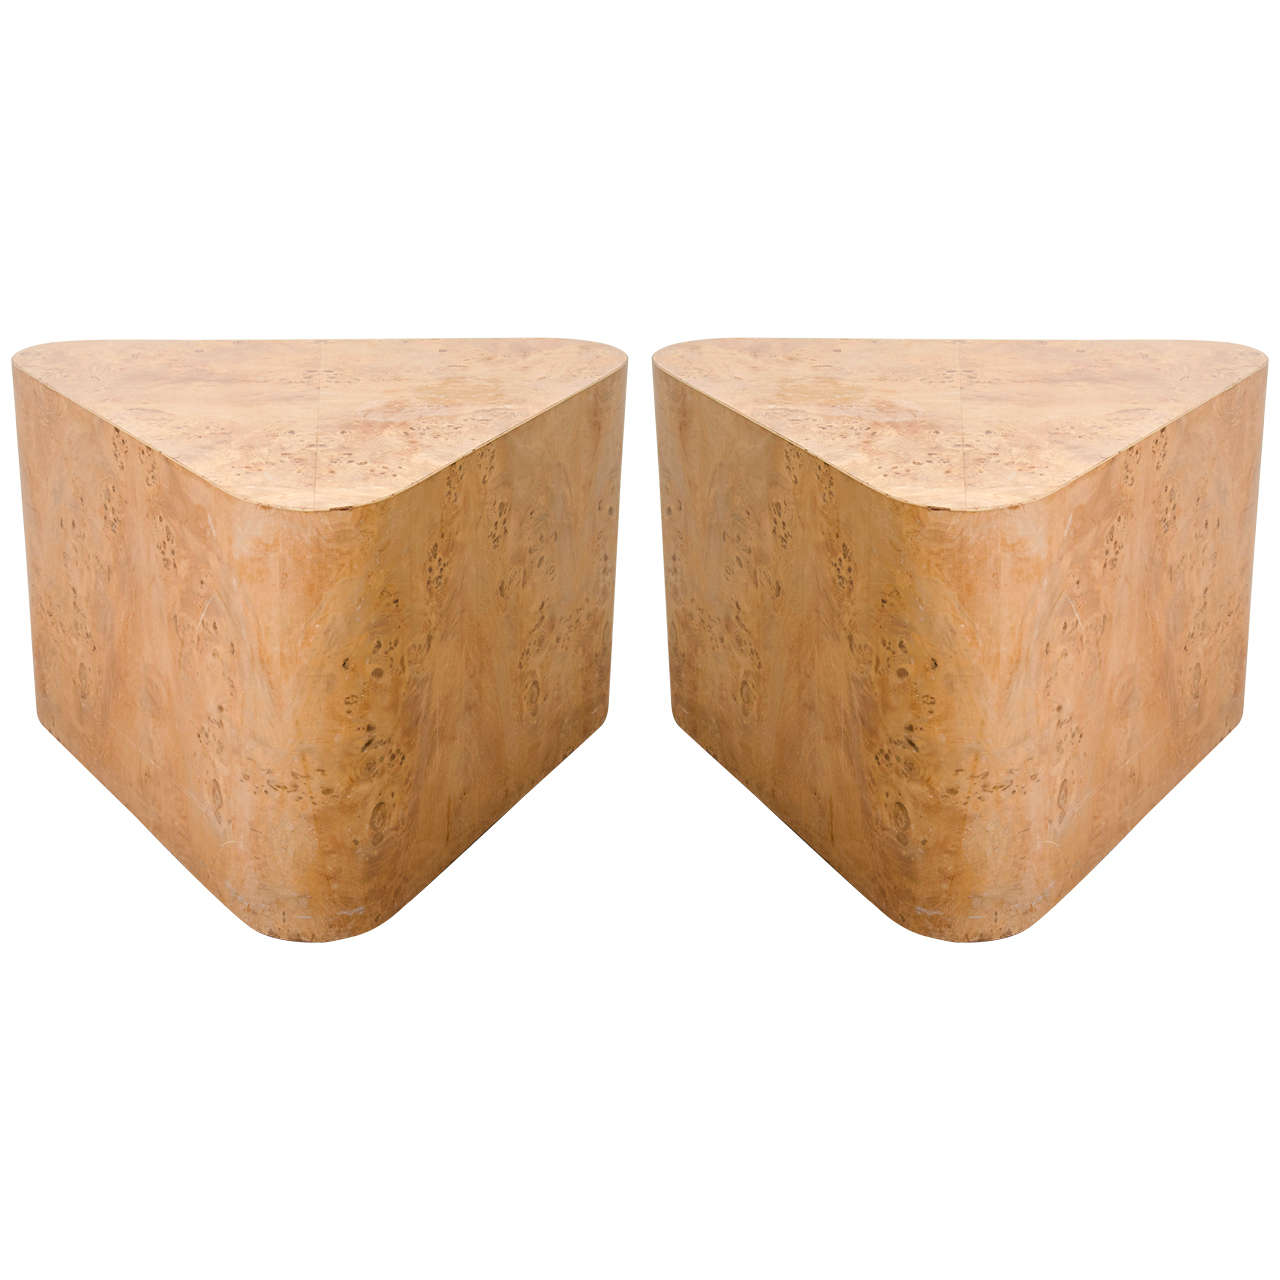 Midcentury Pair of Triangular Burled Wood Side Tables at 1stdibs